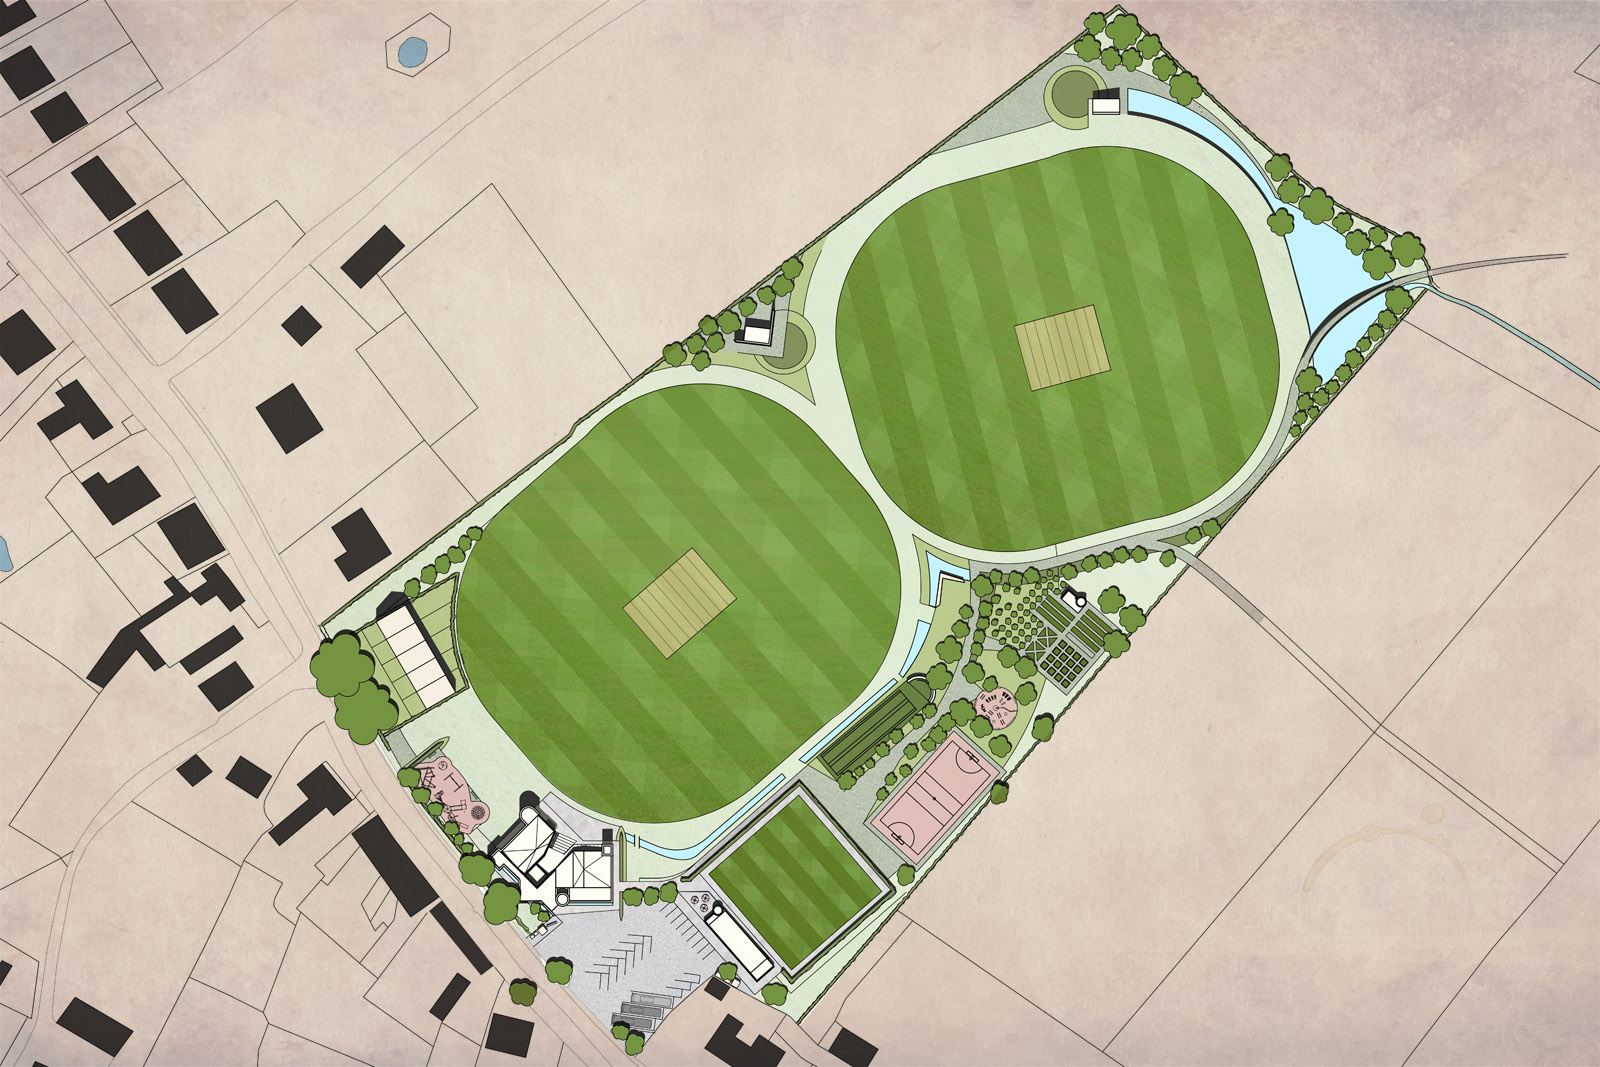 Site plan, showing the 'Community Castle,' cricket pitch and sports facilities and 'moat' landscaping